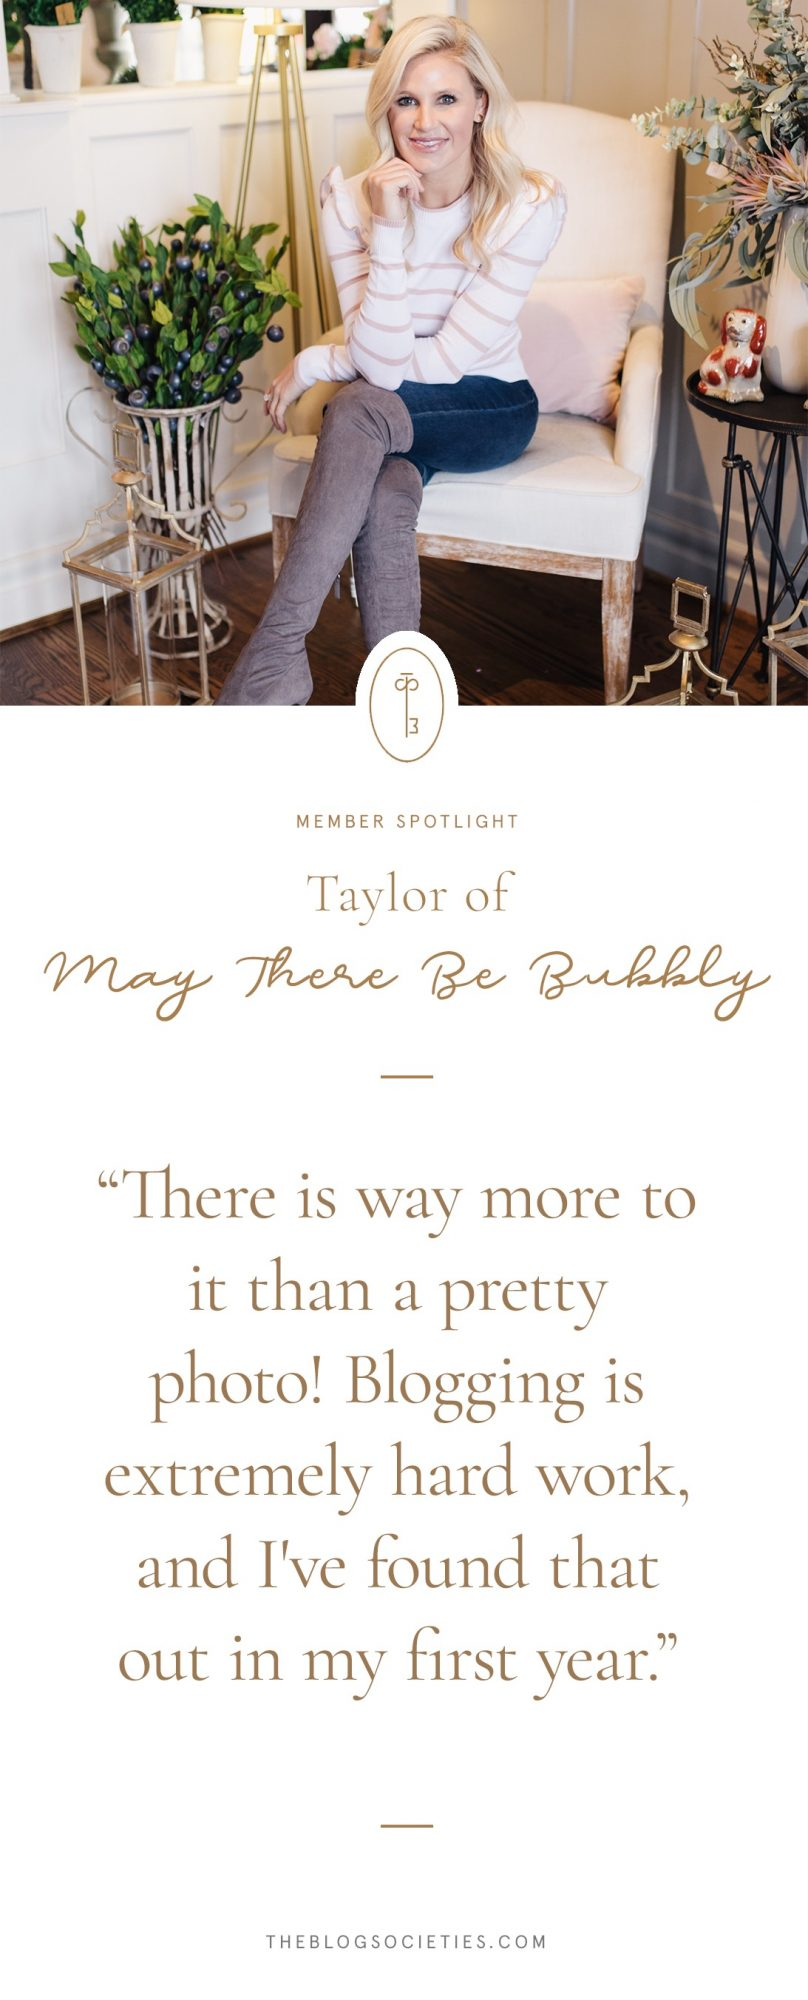 Taylor of May There Be Bubbly